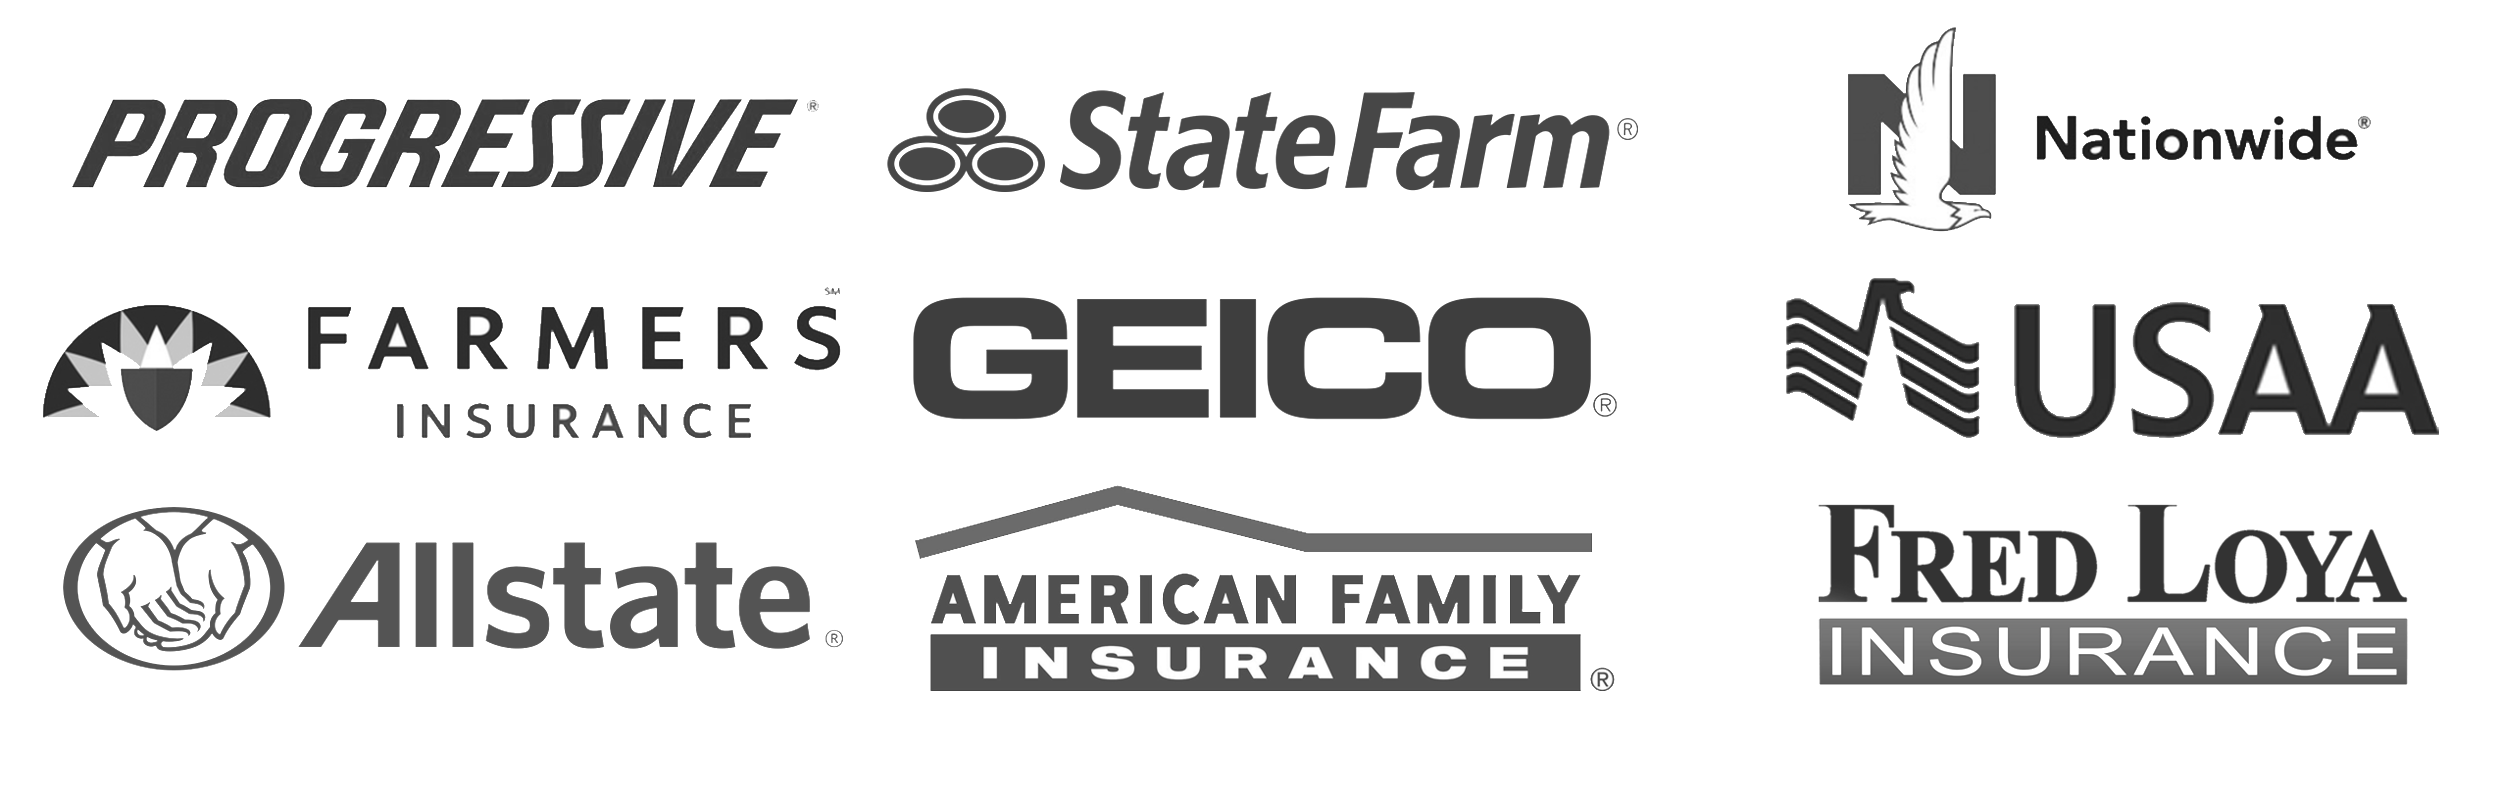 Progressive, State Farm, Nationwide, farmers, Geico, Usaa, American Family Insurance, Allstate, Fred Loya